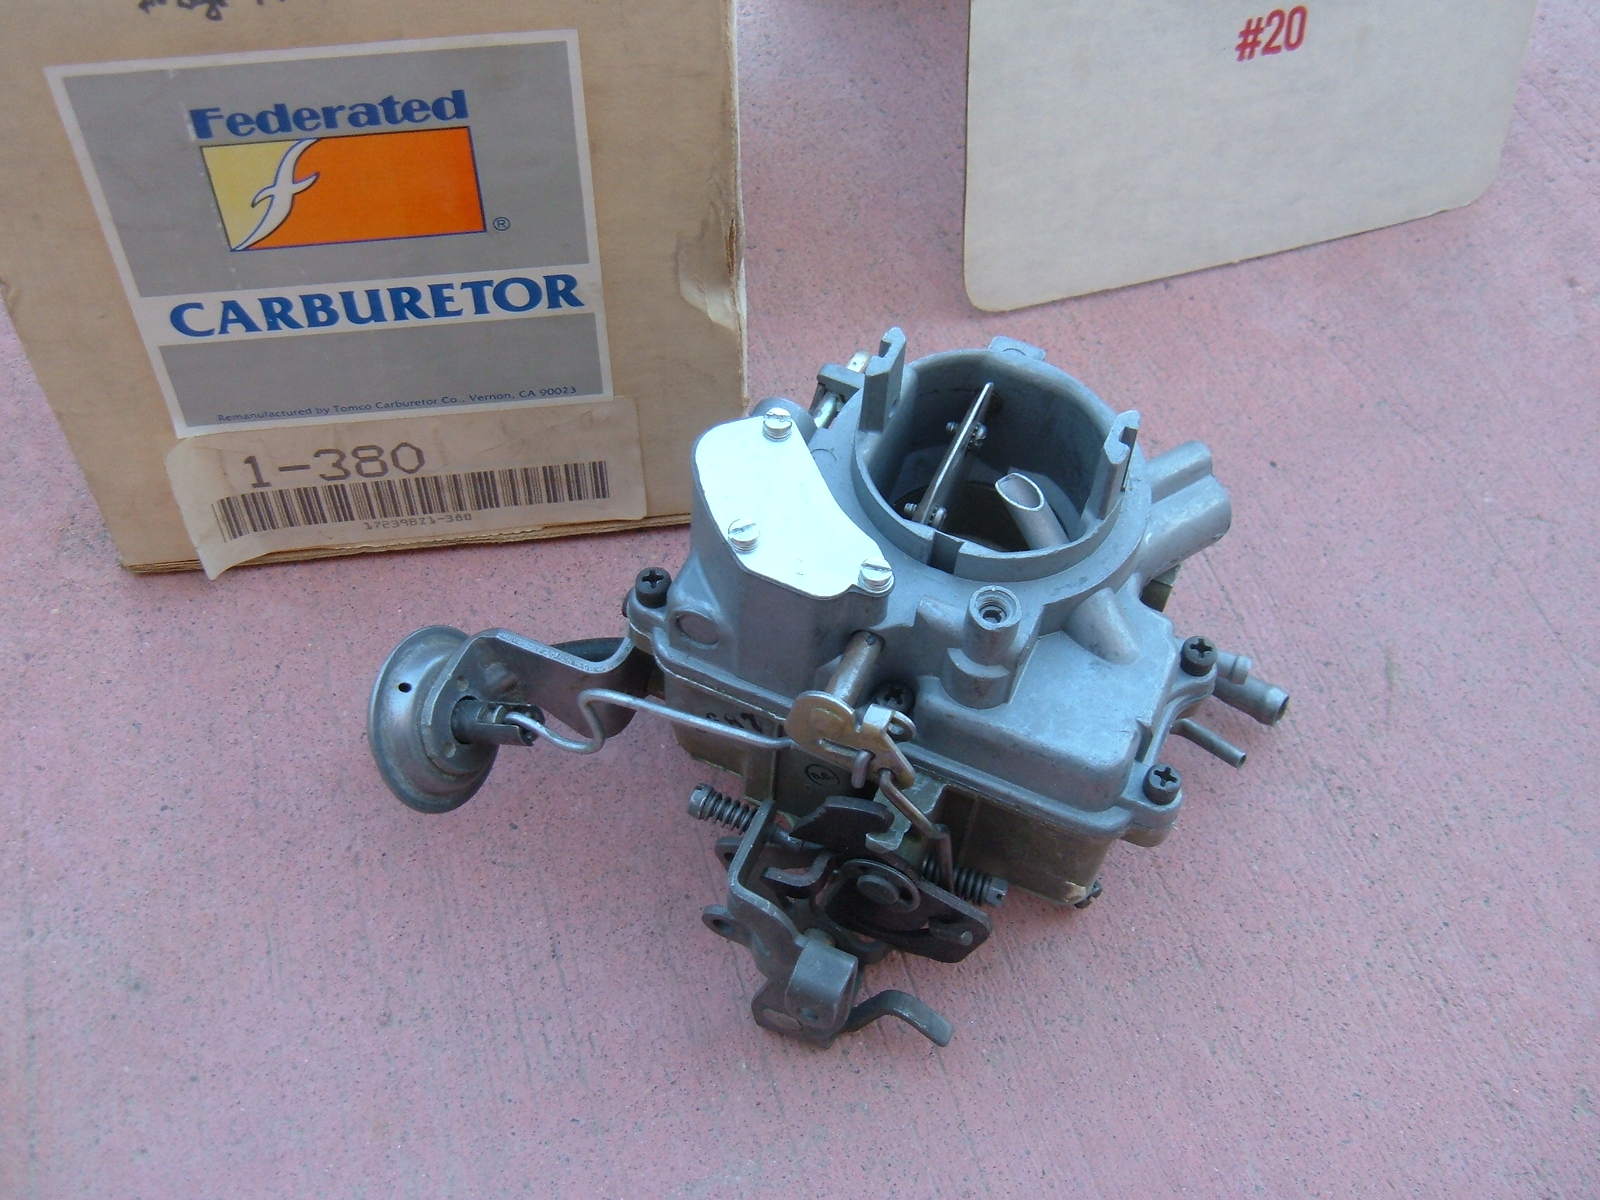 1974 dodge plymouth chrysler holley carburetor 1bar rebuilt dart valiant (zh 1-380)